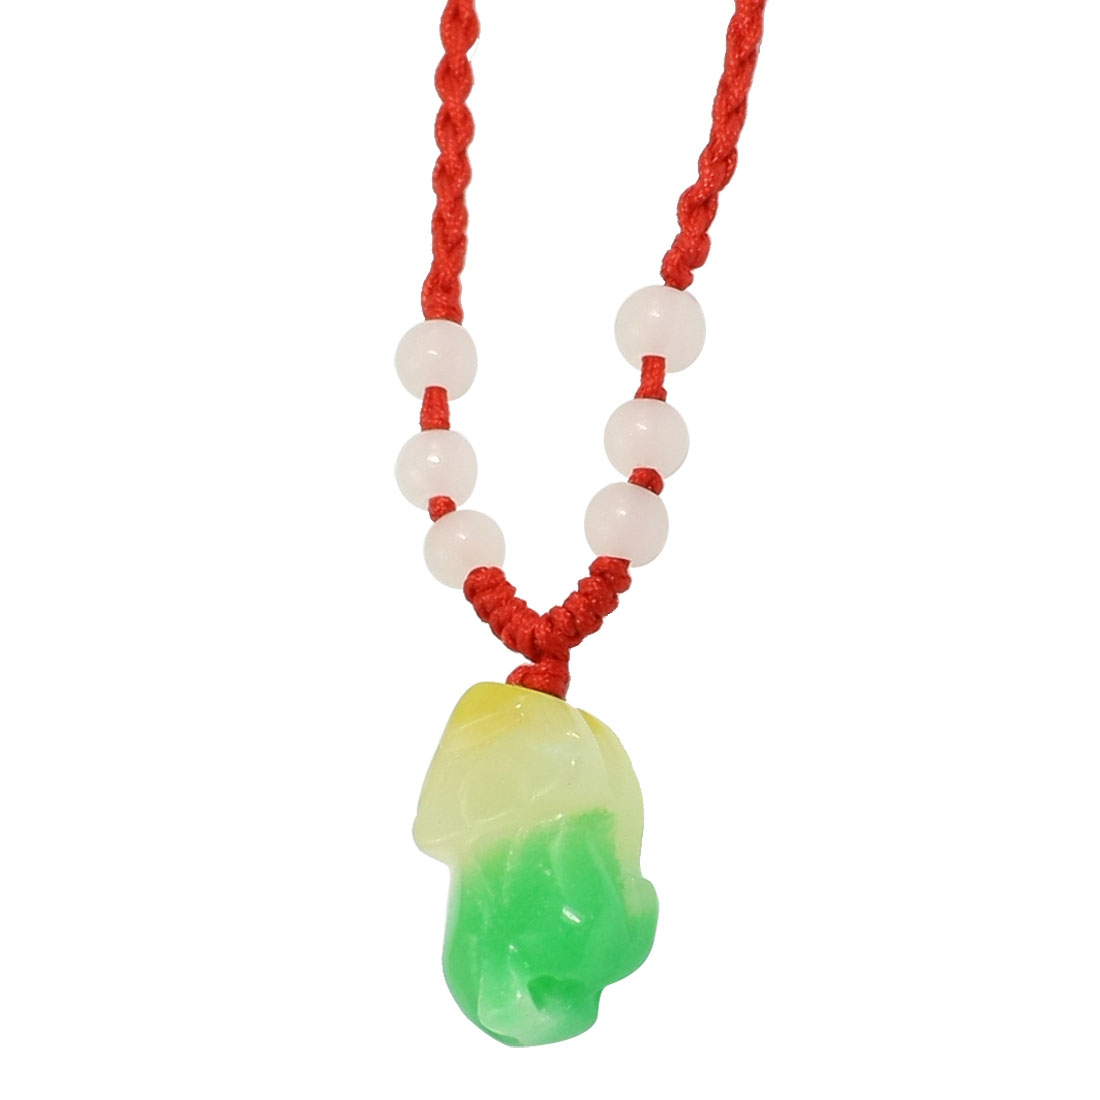 Red Braid String Yellow White Green Faux Jade Decor Pendant Beaded Necklace